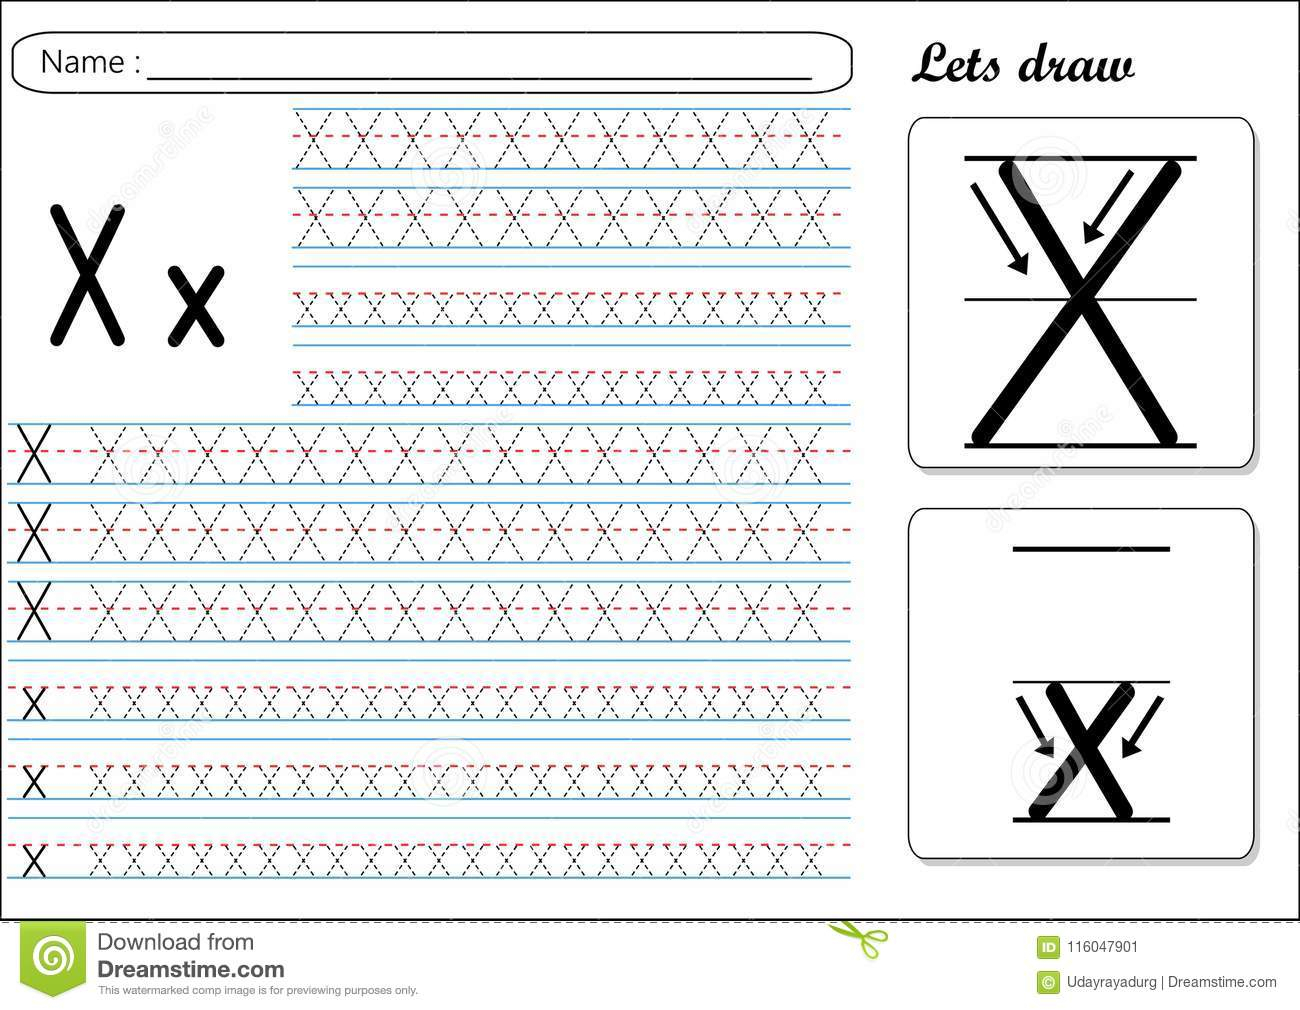 Tracing Worksheet -Xx Stock Vector. Illustration Of Letter pertaining to Letter X Tracing Sheet